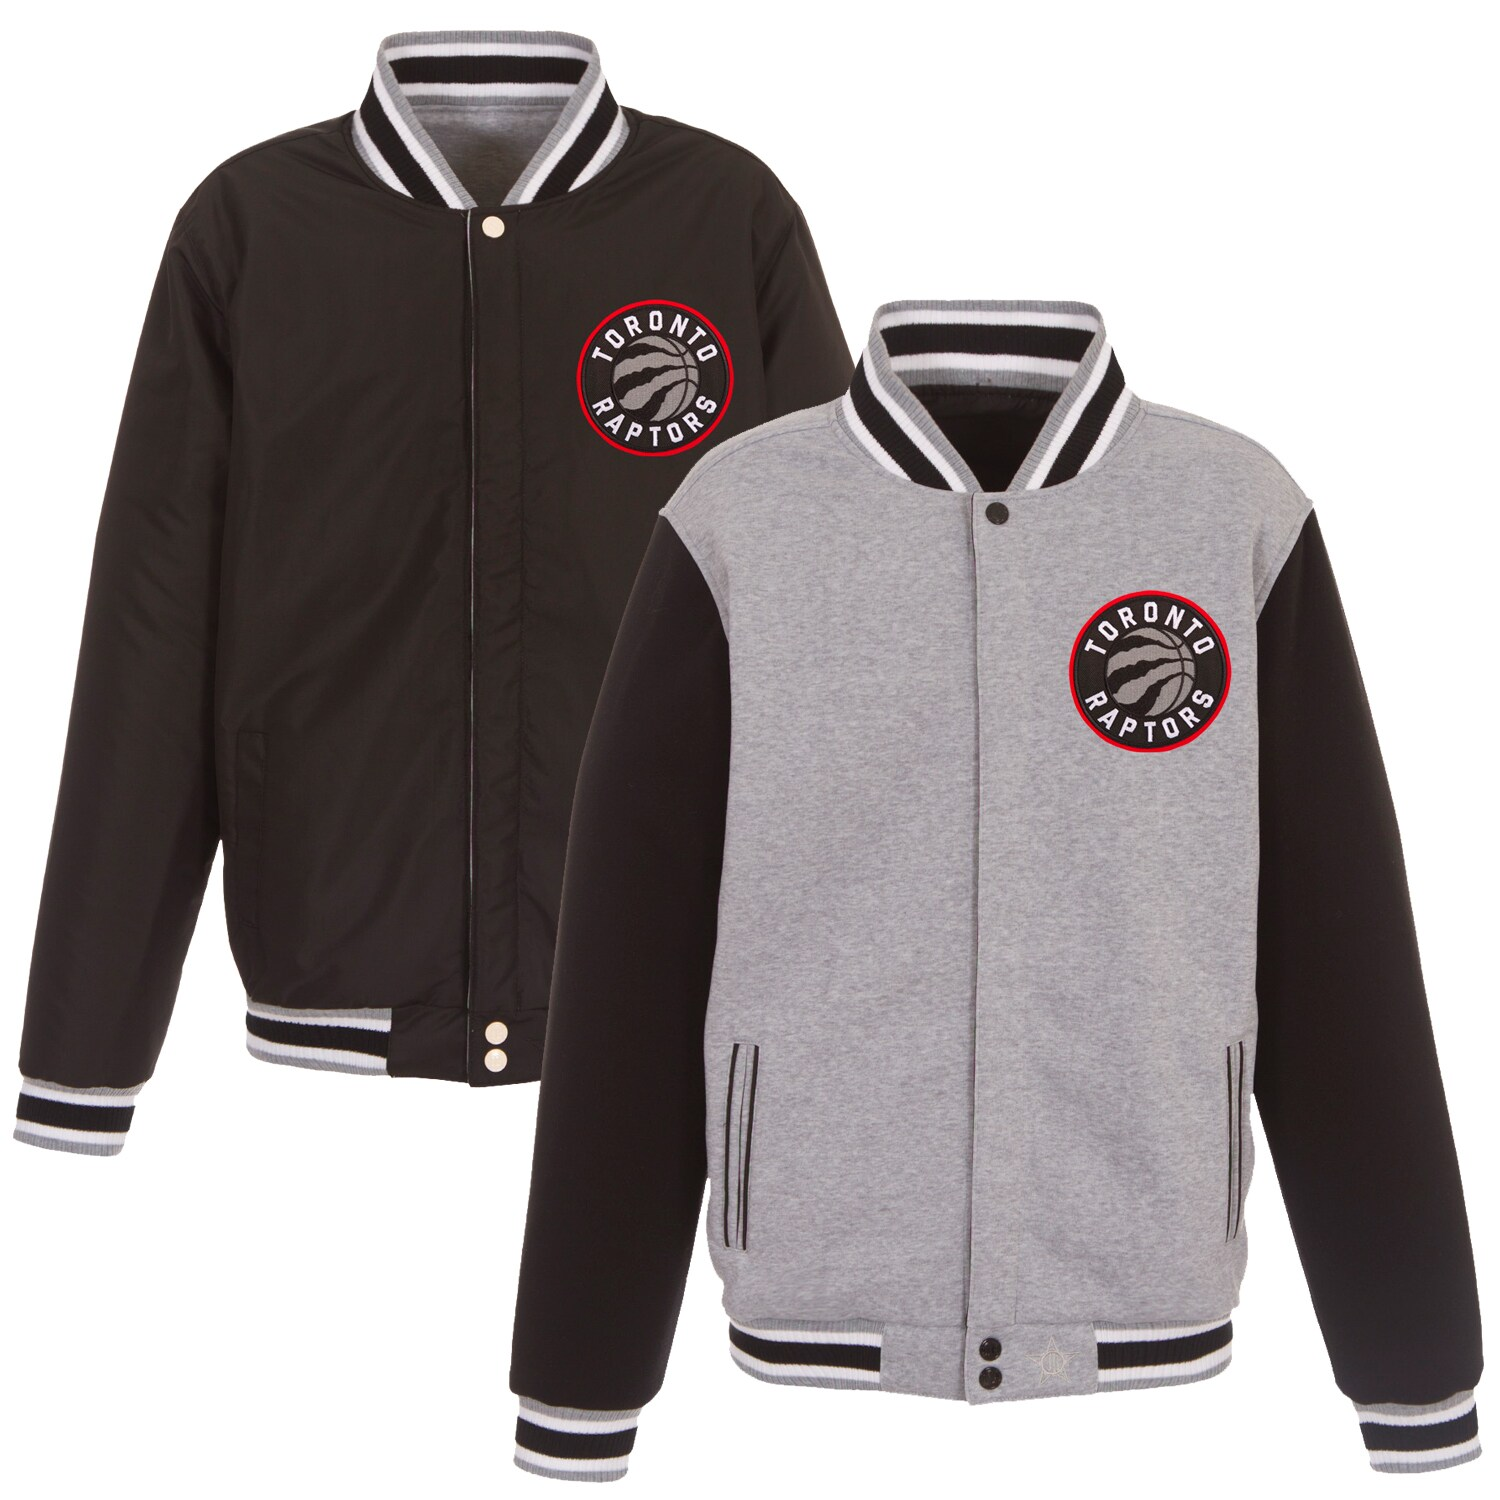 Toronto Raptors JH Design Embroidered Logo Reversible Fleece Full-Snap Jacket - Gray/Black